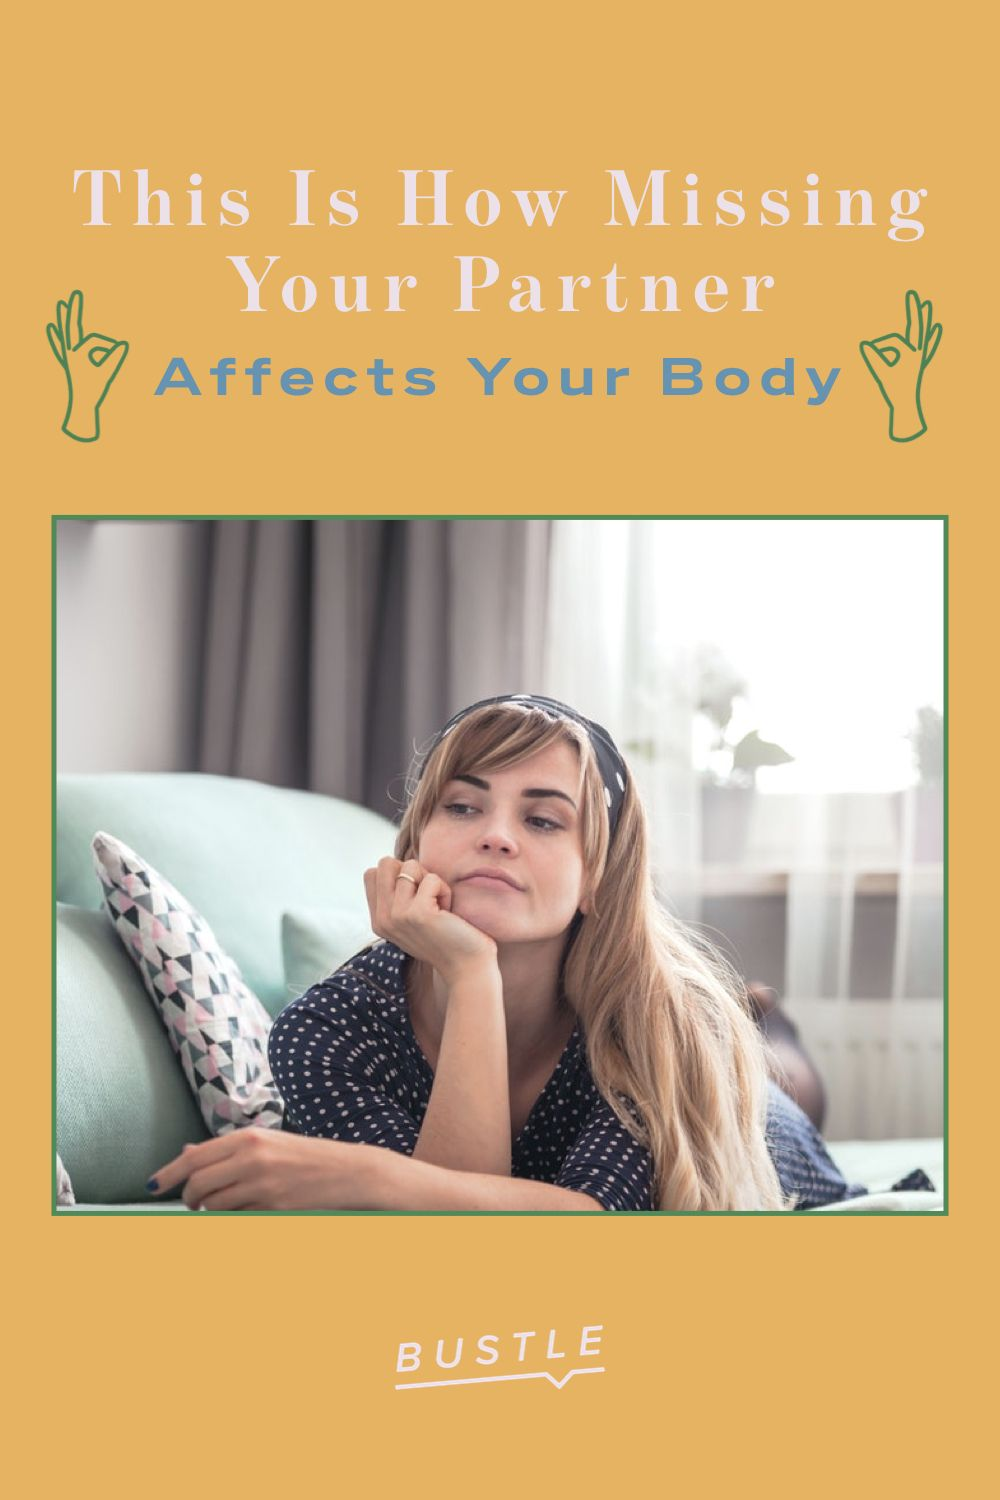 This Is How Missing Your Partner Affects Your Body